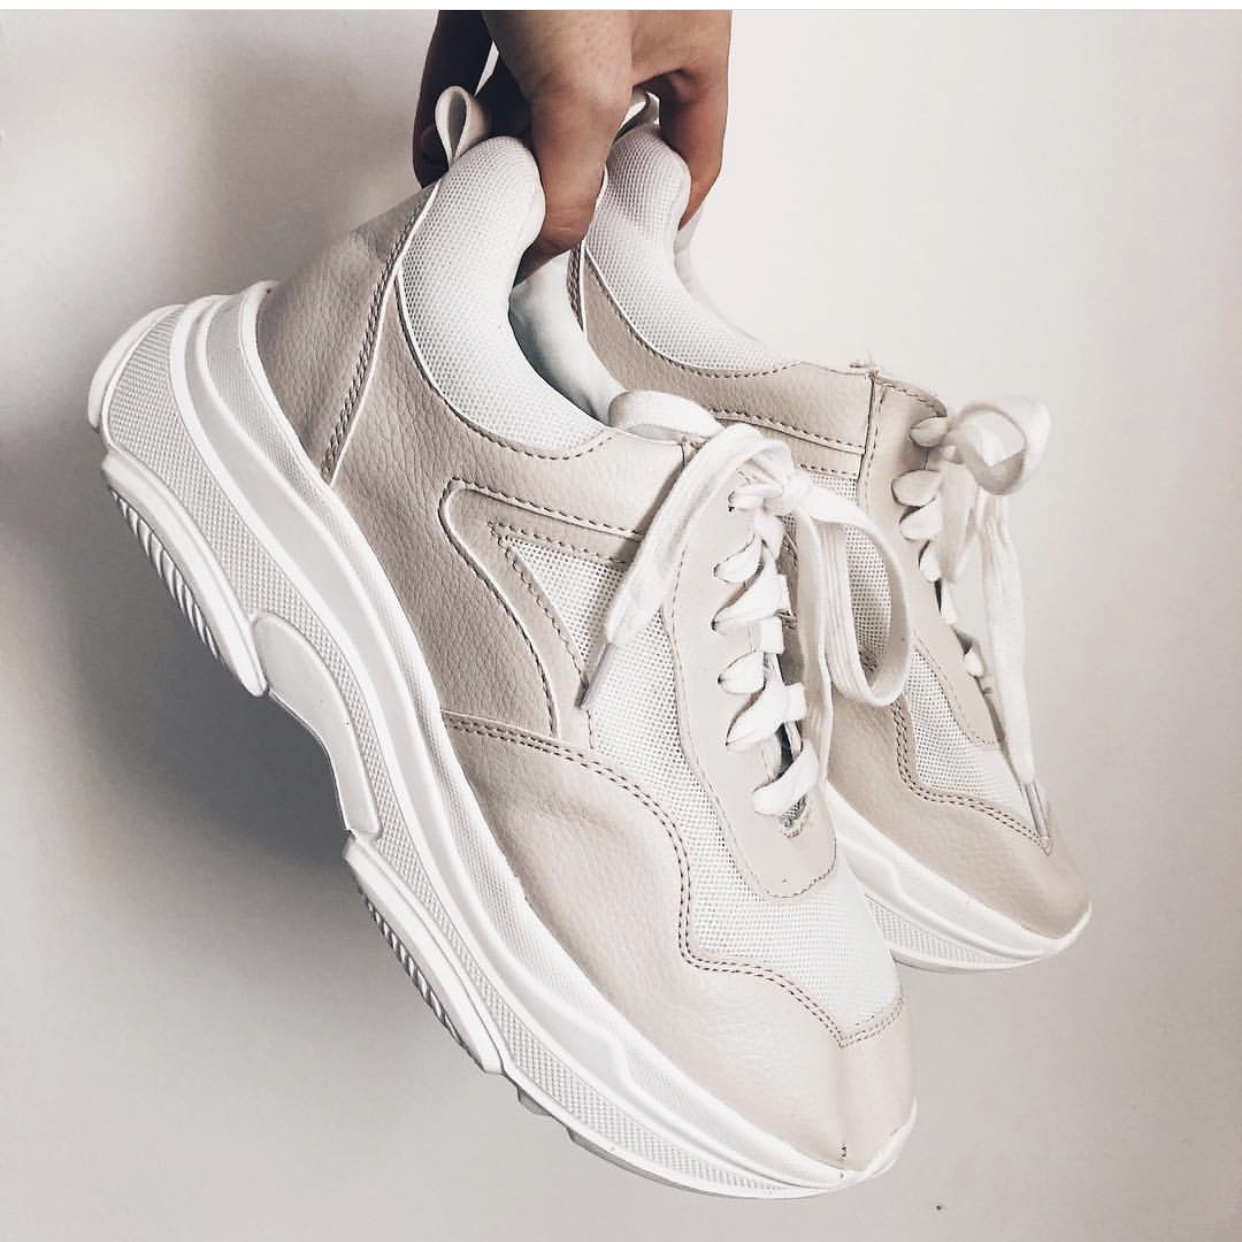 Primark chunky trainers in white/beige